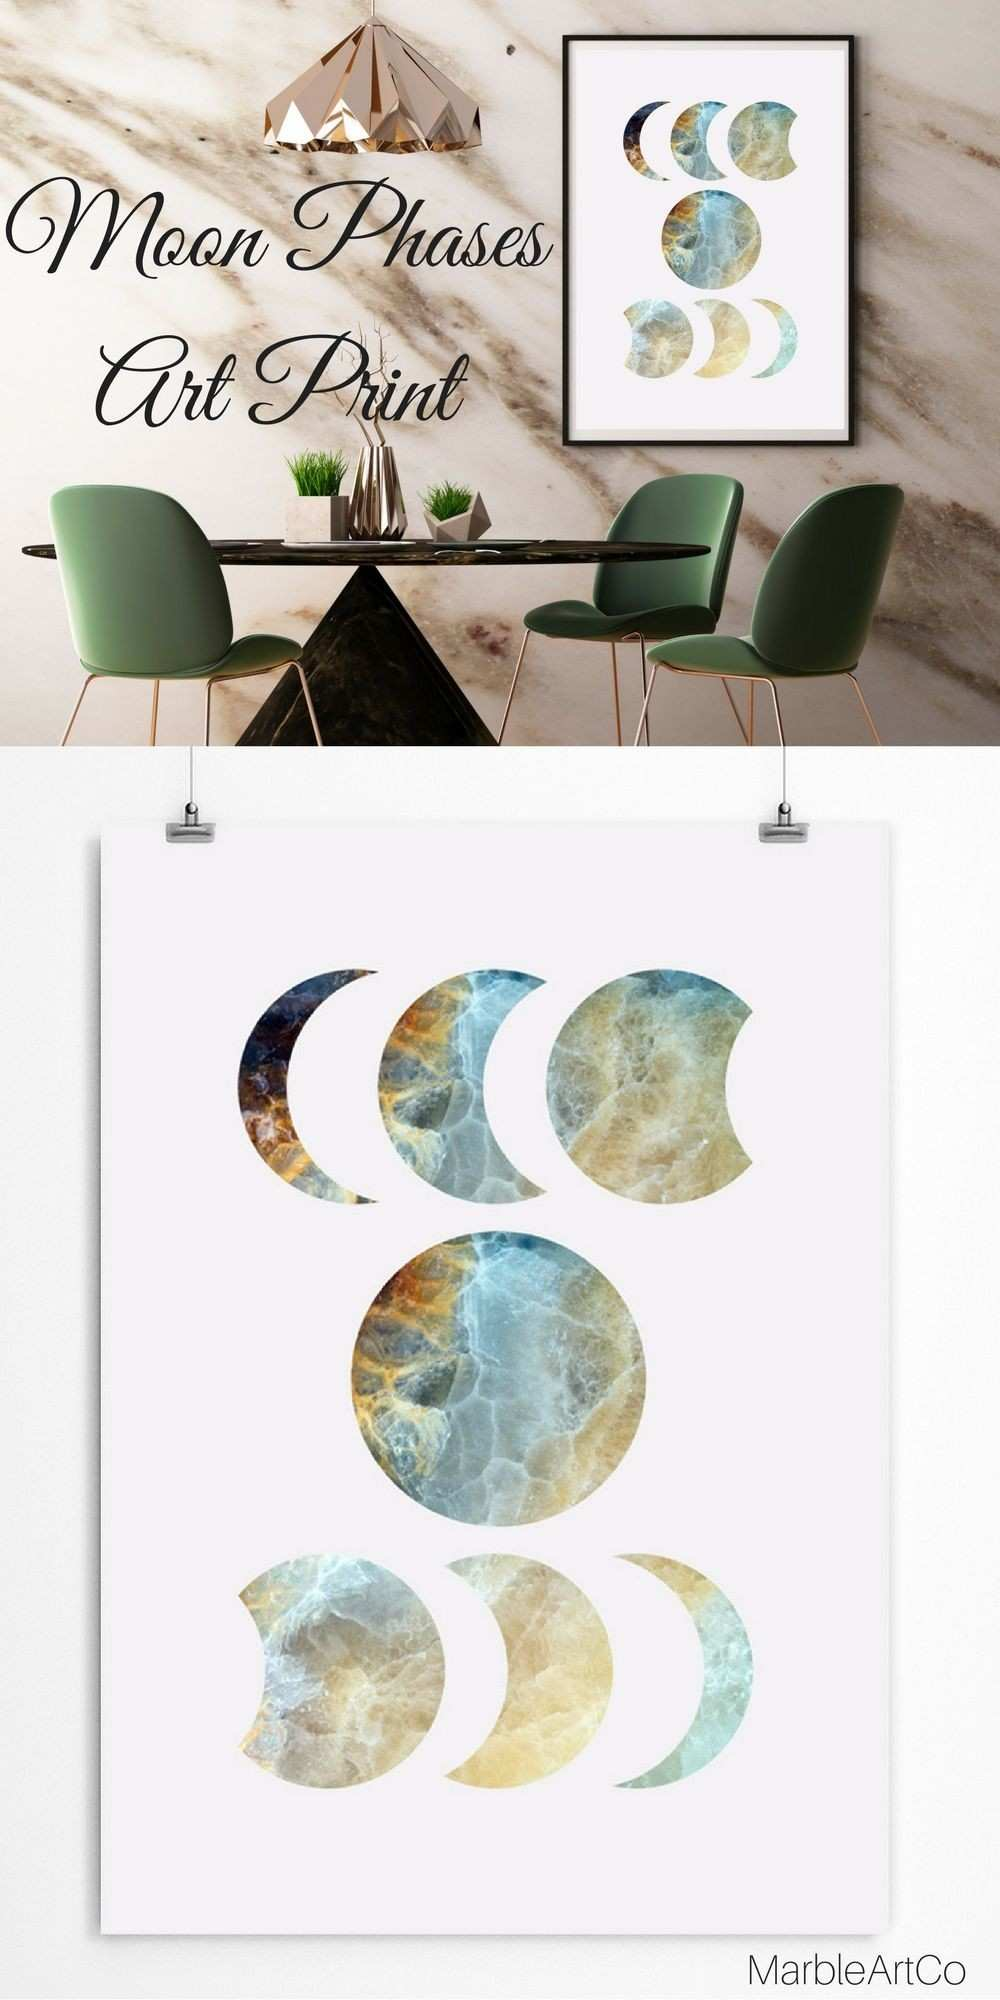 Lunar Phases Print Crescent Moon Wall Hanging Moon Phases Print Blue